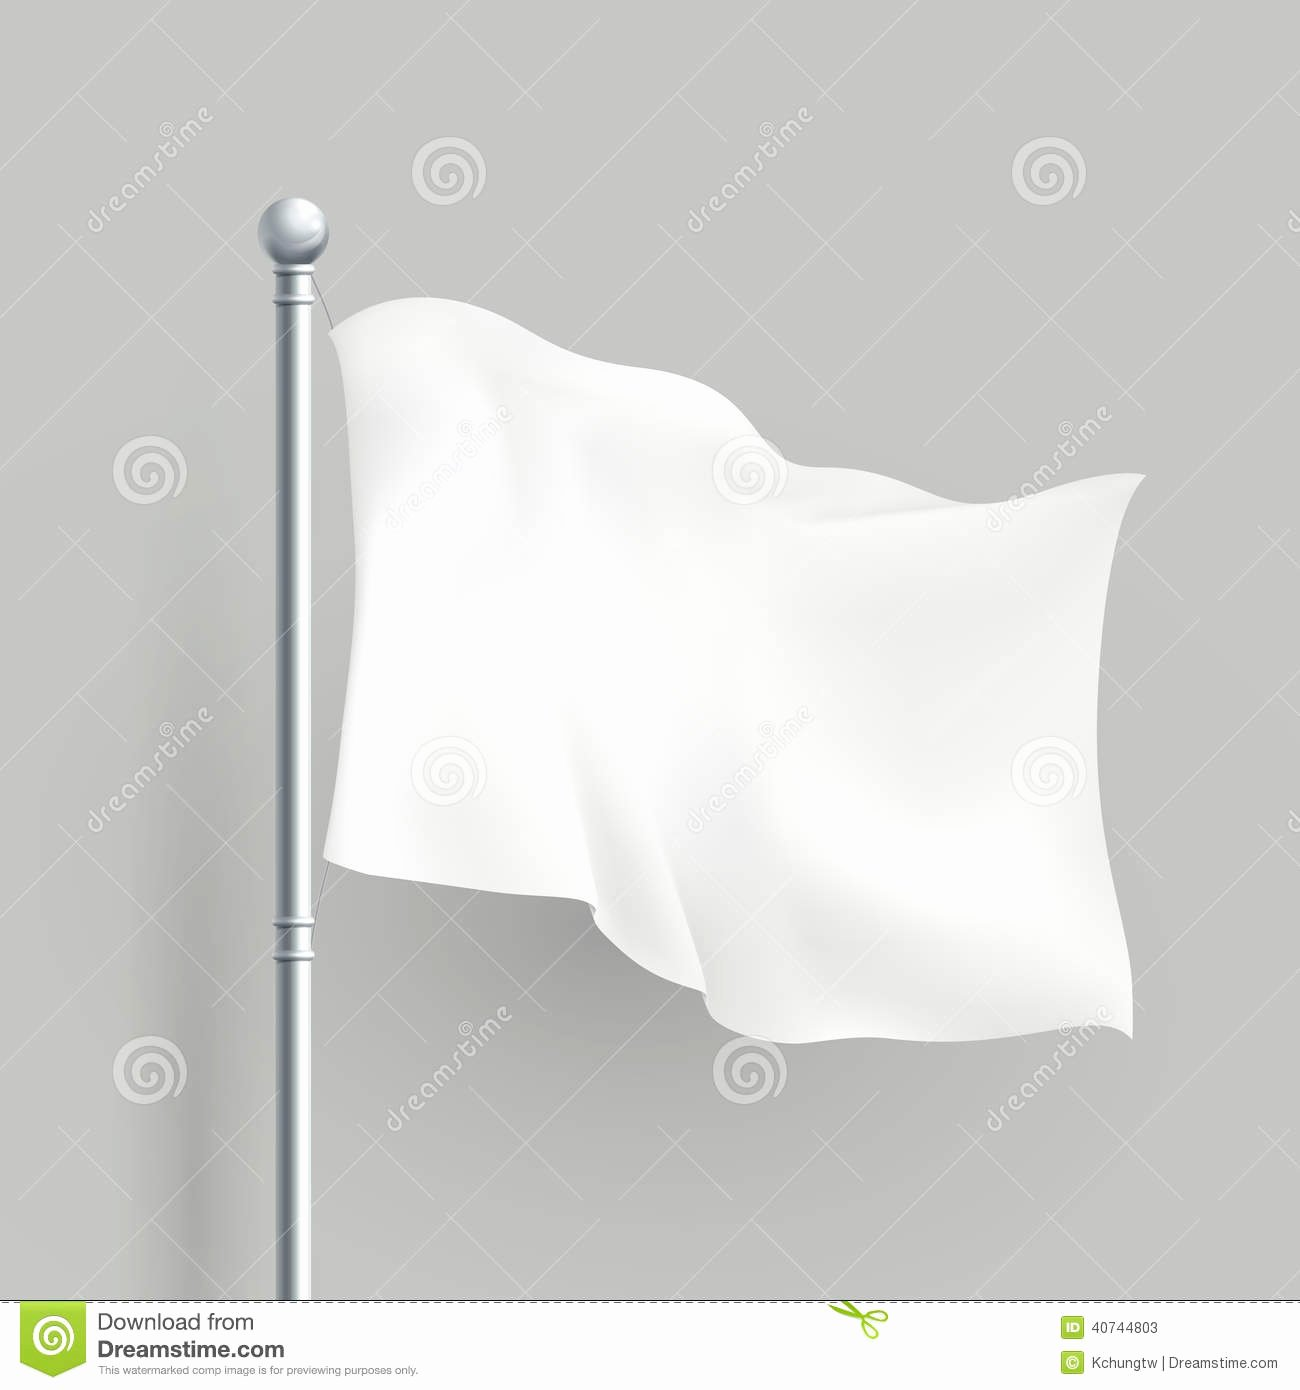 Blank Flag Template Fresh 3d Vector White Flag Blank Template Stock Vector